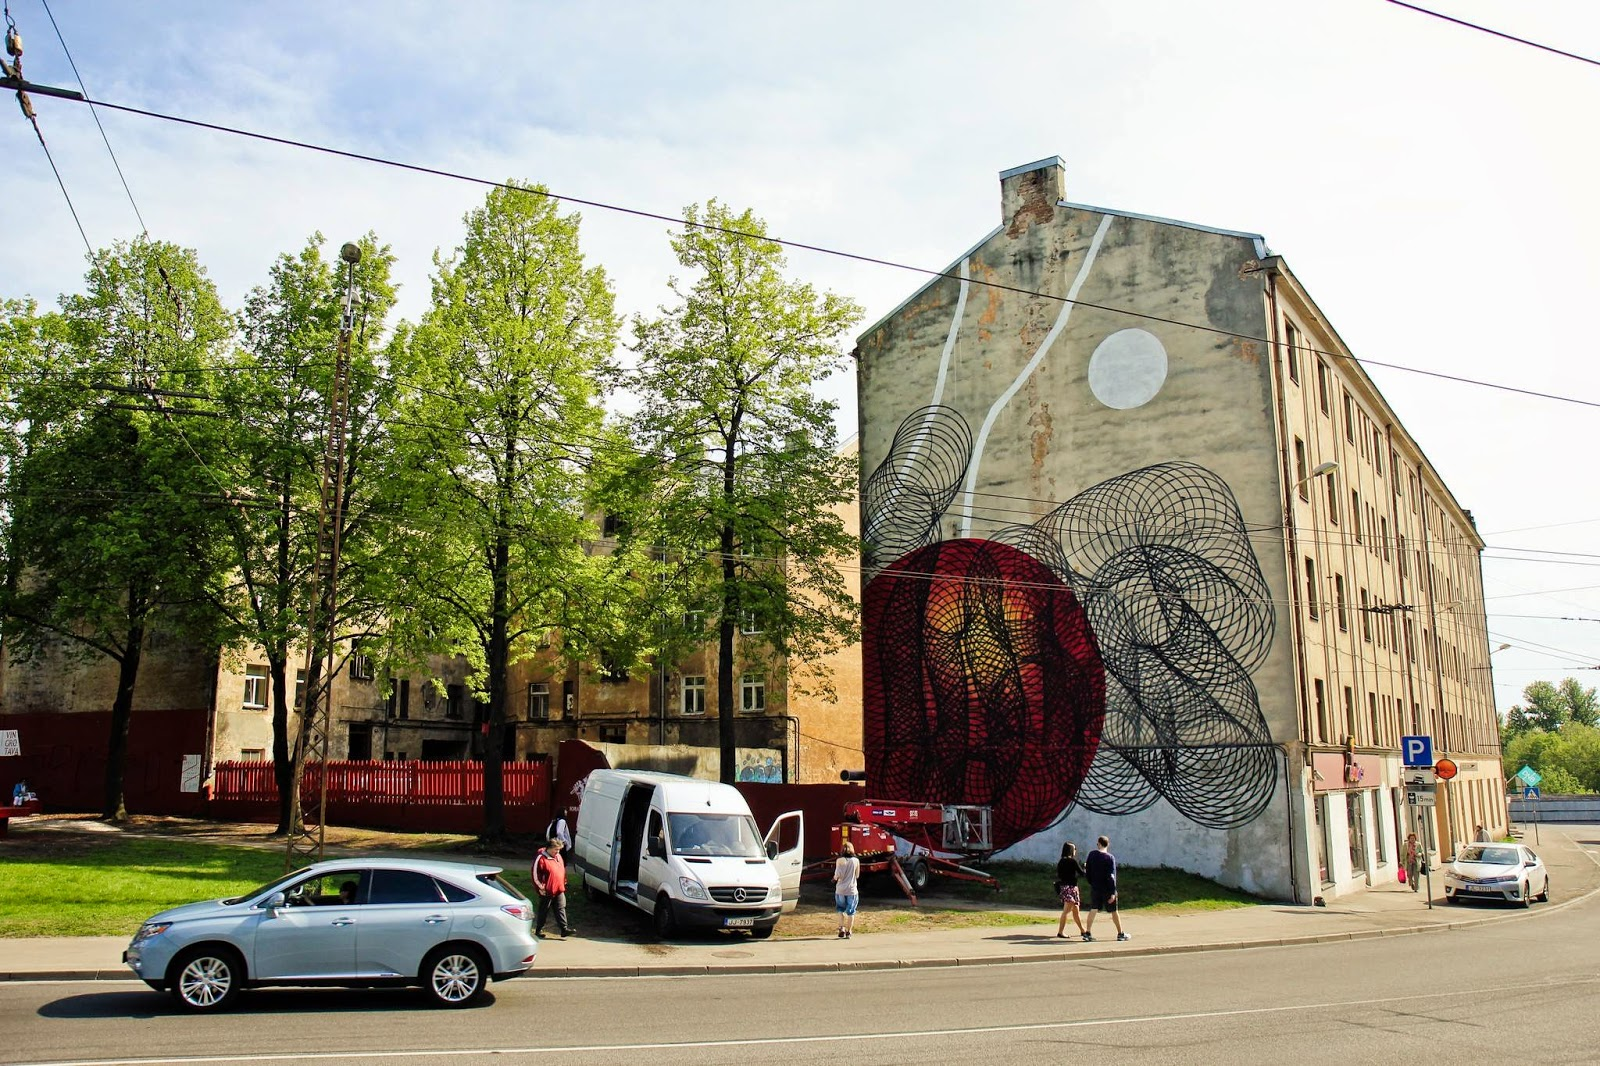 Moneyless recently stopped by Eastern Europe to paint this beautiful new piece on the streets of Riga in Latvia.